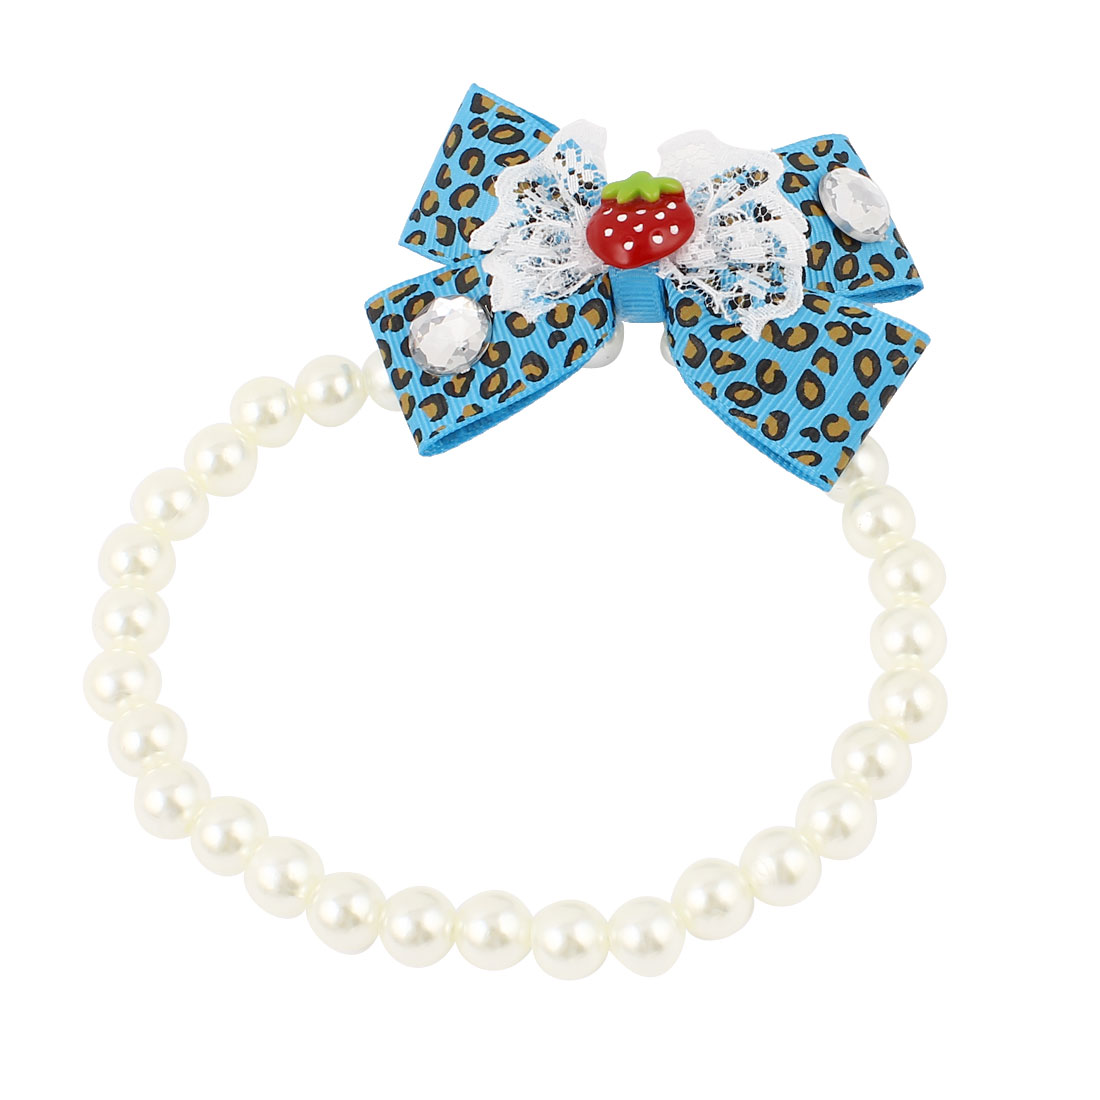 Lace Bowknot Accent Pet Dog Plastic Beads Imitation Pearls Collar Necklace White Blue M